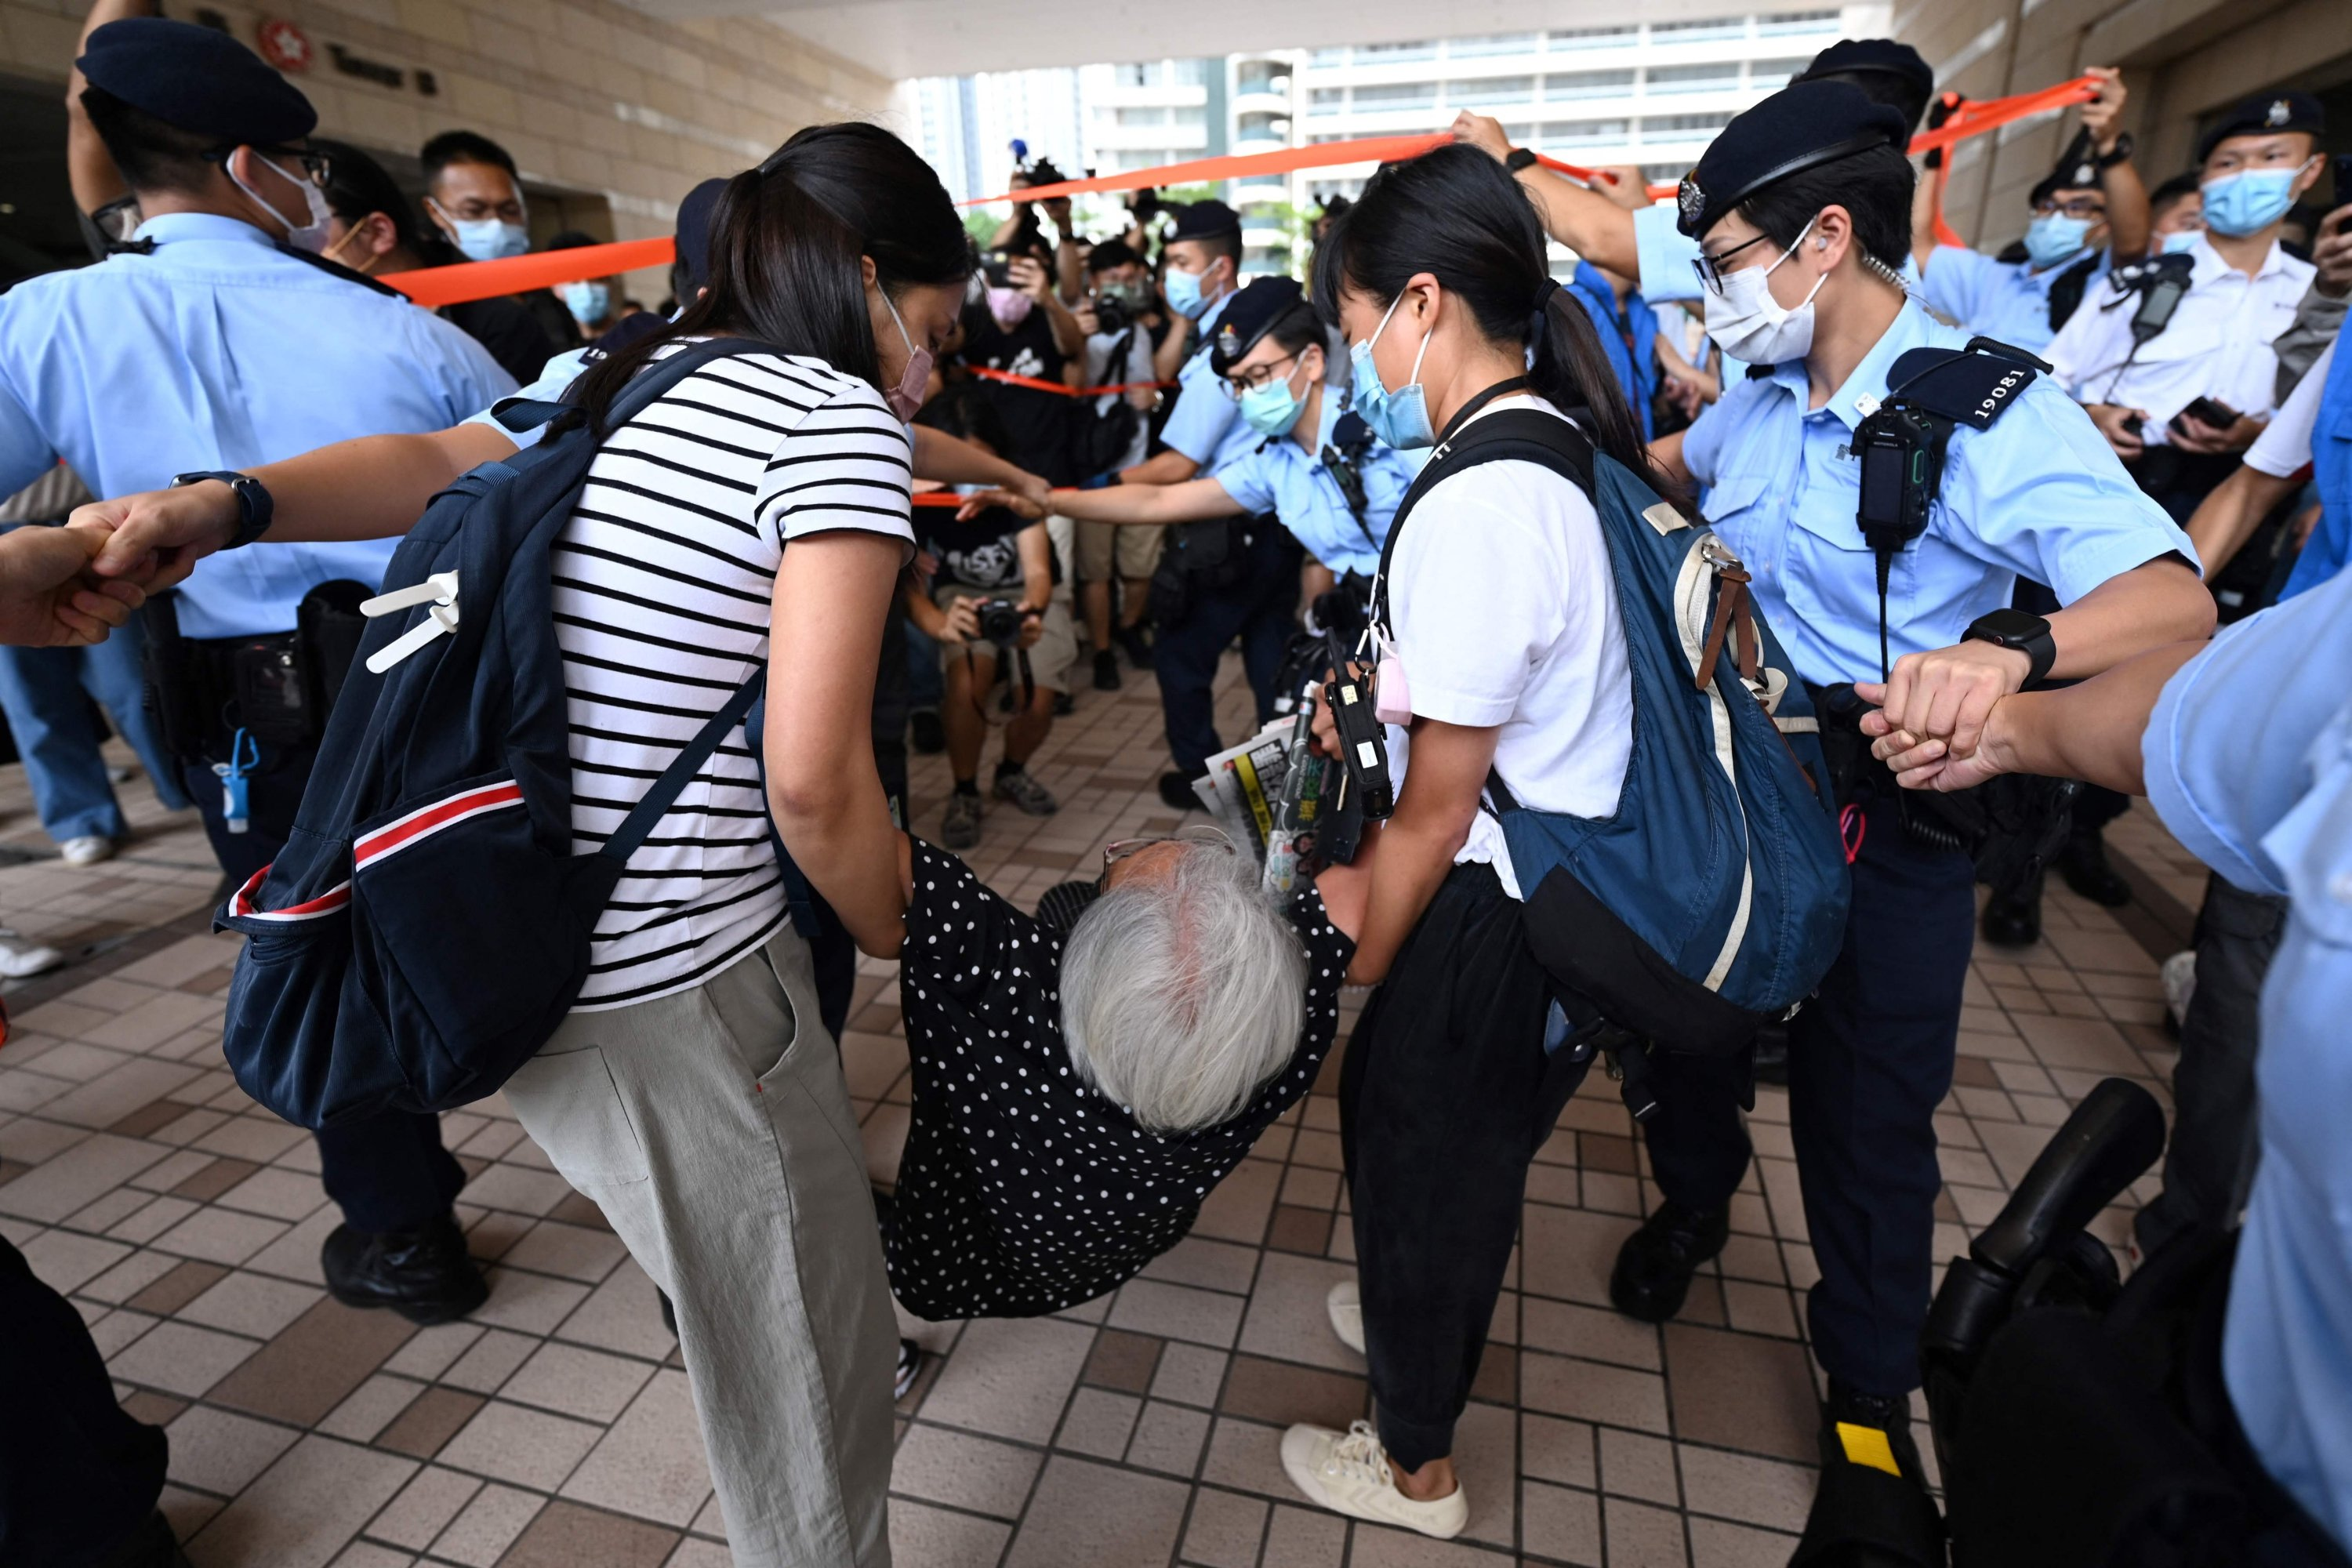 Activist Alexandra Wong (C), also known as Grandma Wong, is dragged away by police inside the court grounds in Hong Kong, China, June 19, 2021. (Photo by AFP)